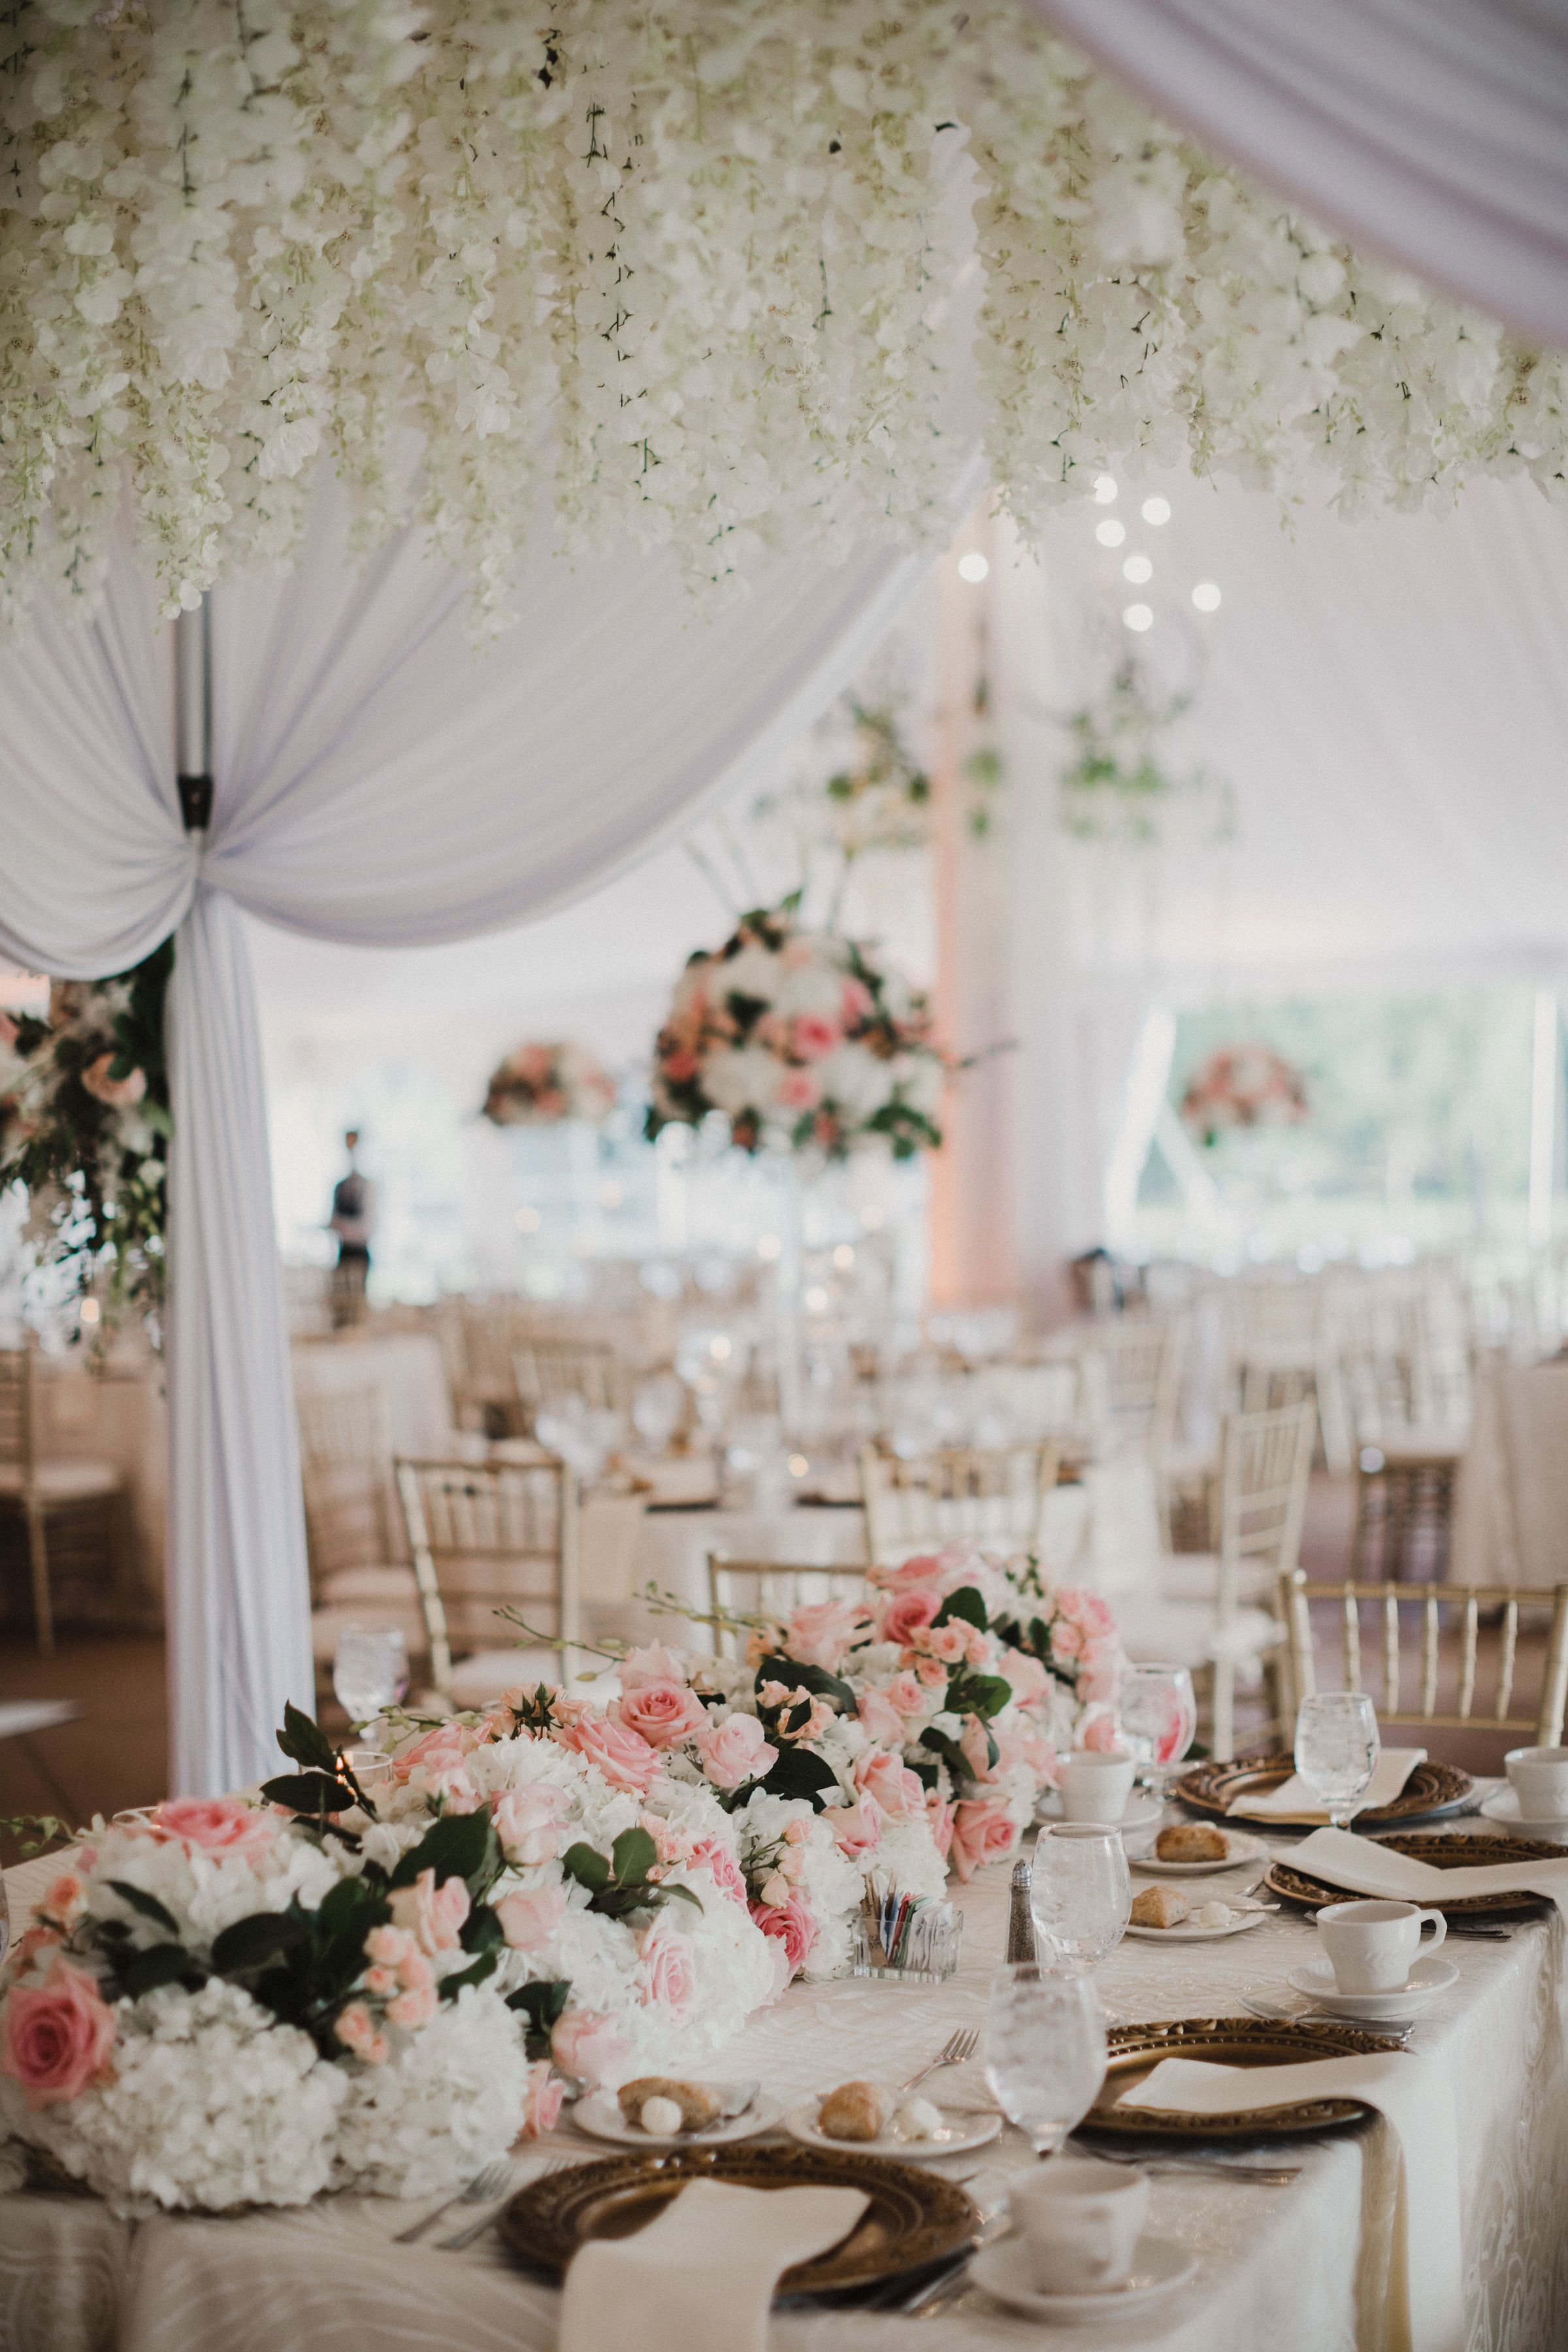 Elegant Pink And White Wedding Reception Decor In The Garden Tent